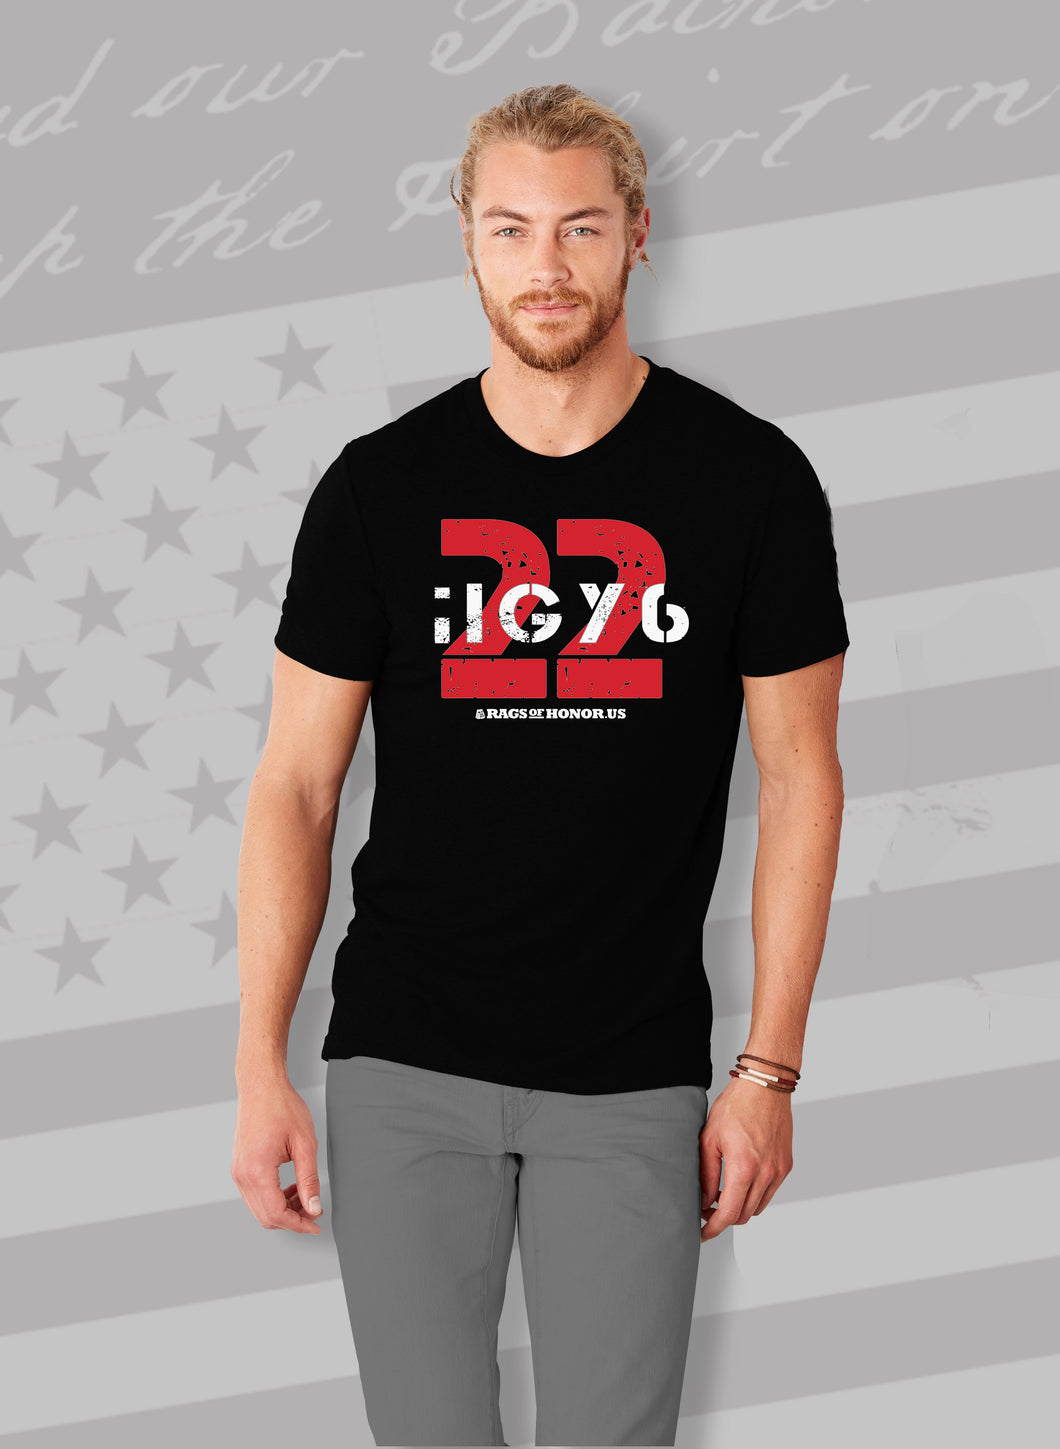 Suicide Awareness IGY6 Unisex T-Shirt